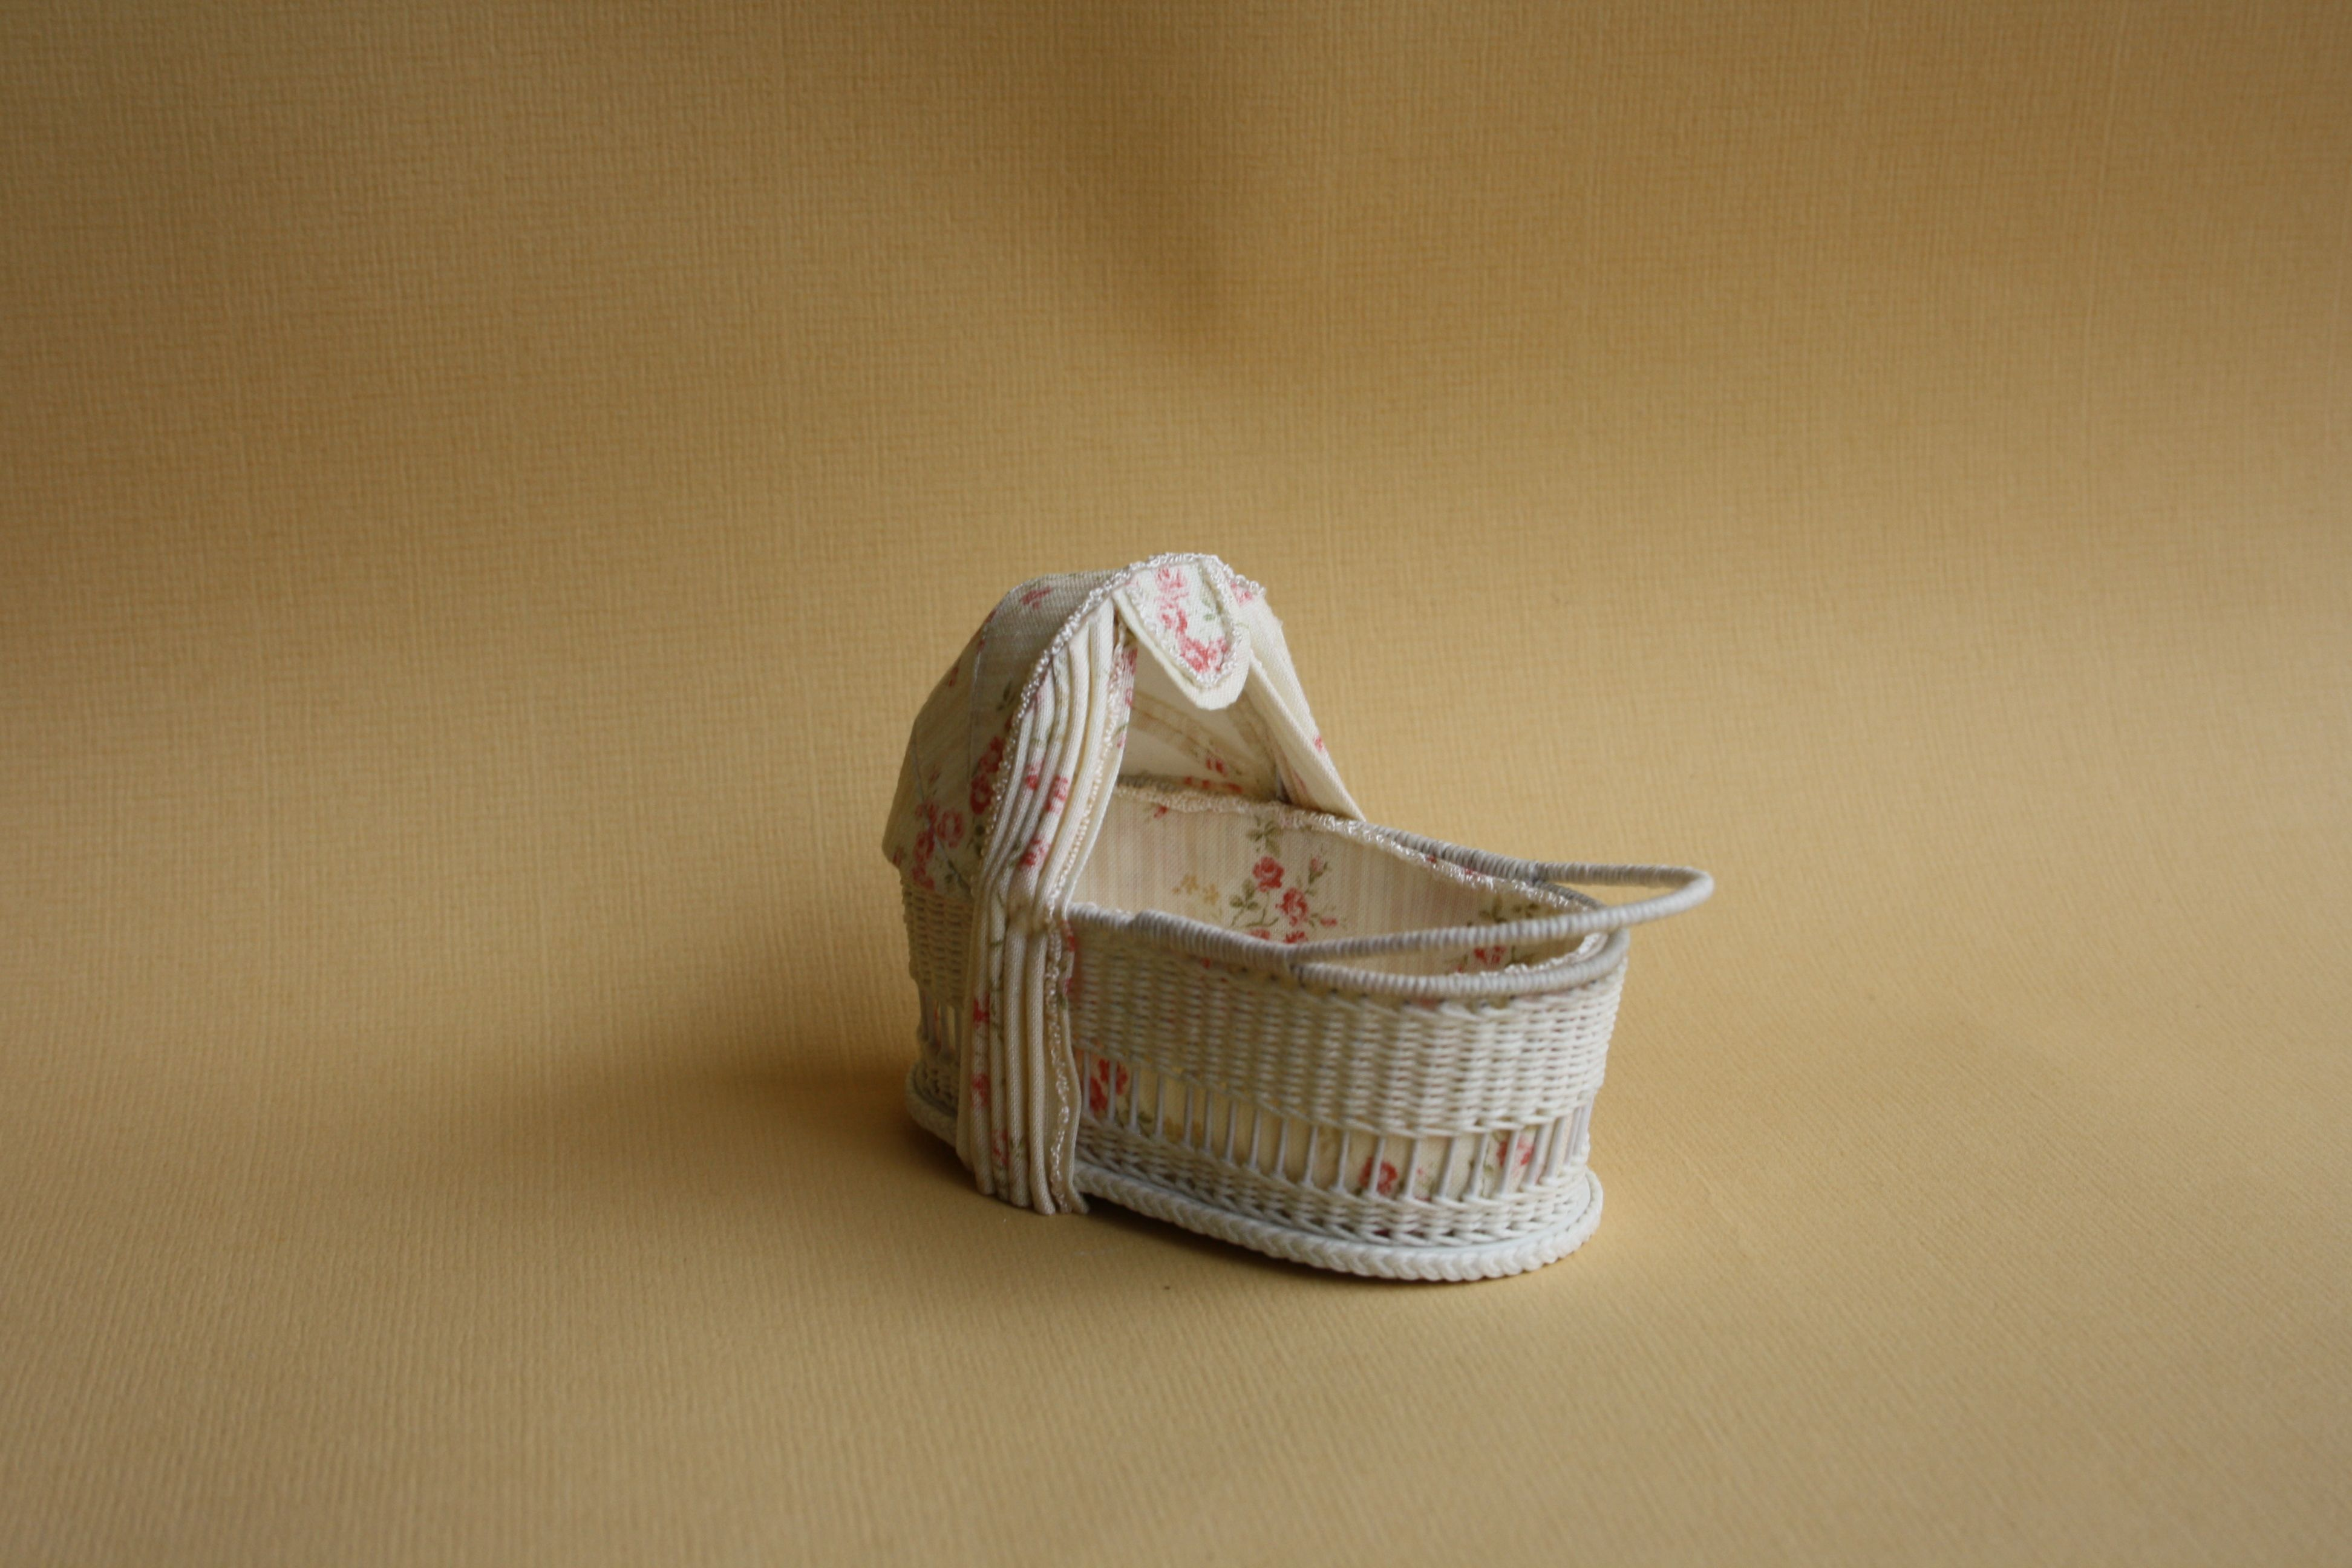 Commission. Wicker crib, scale 1: 12, made by Will Werson.